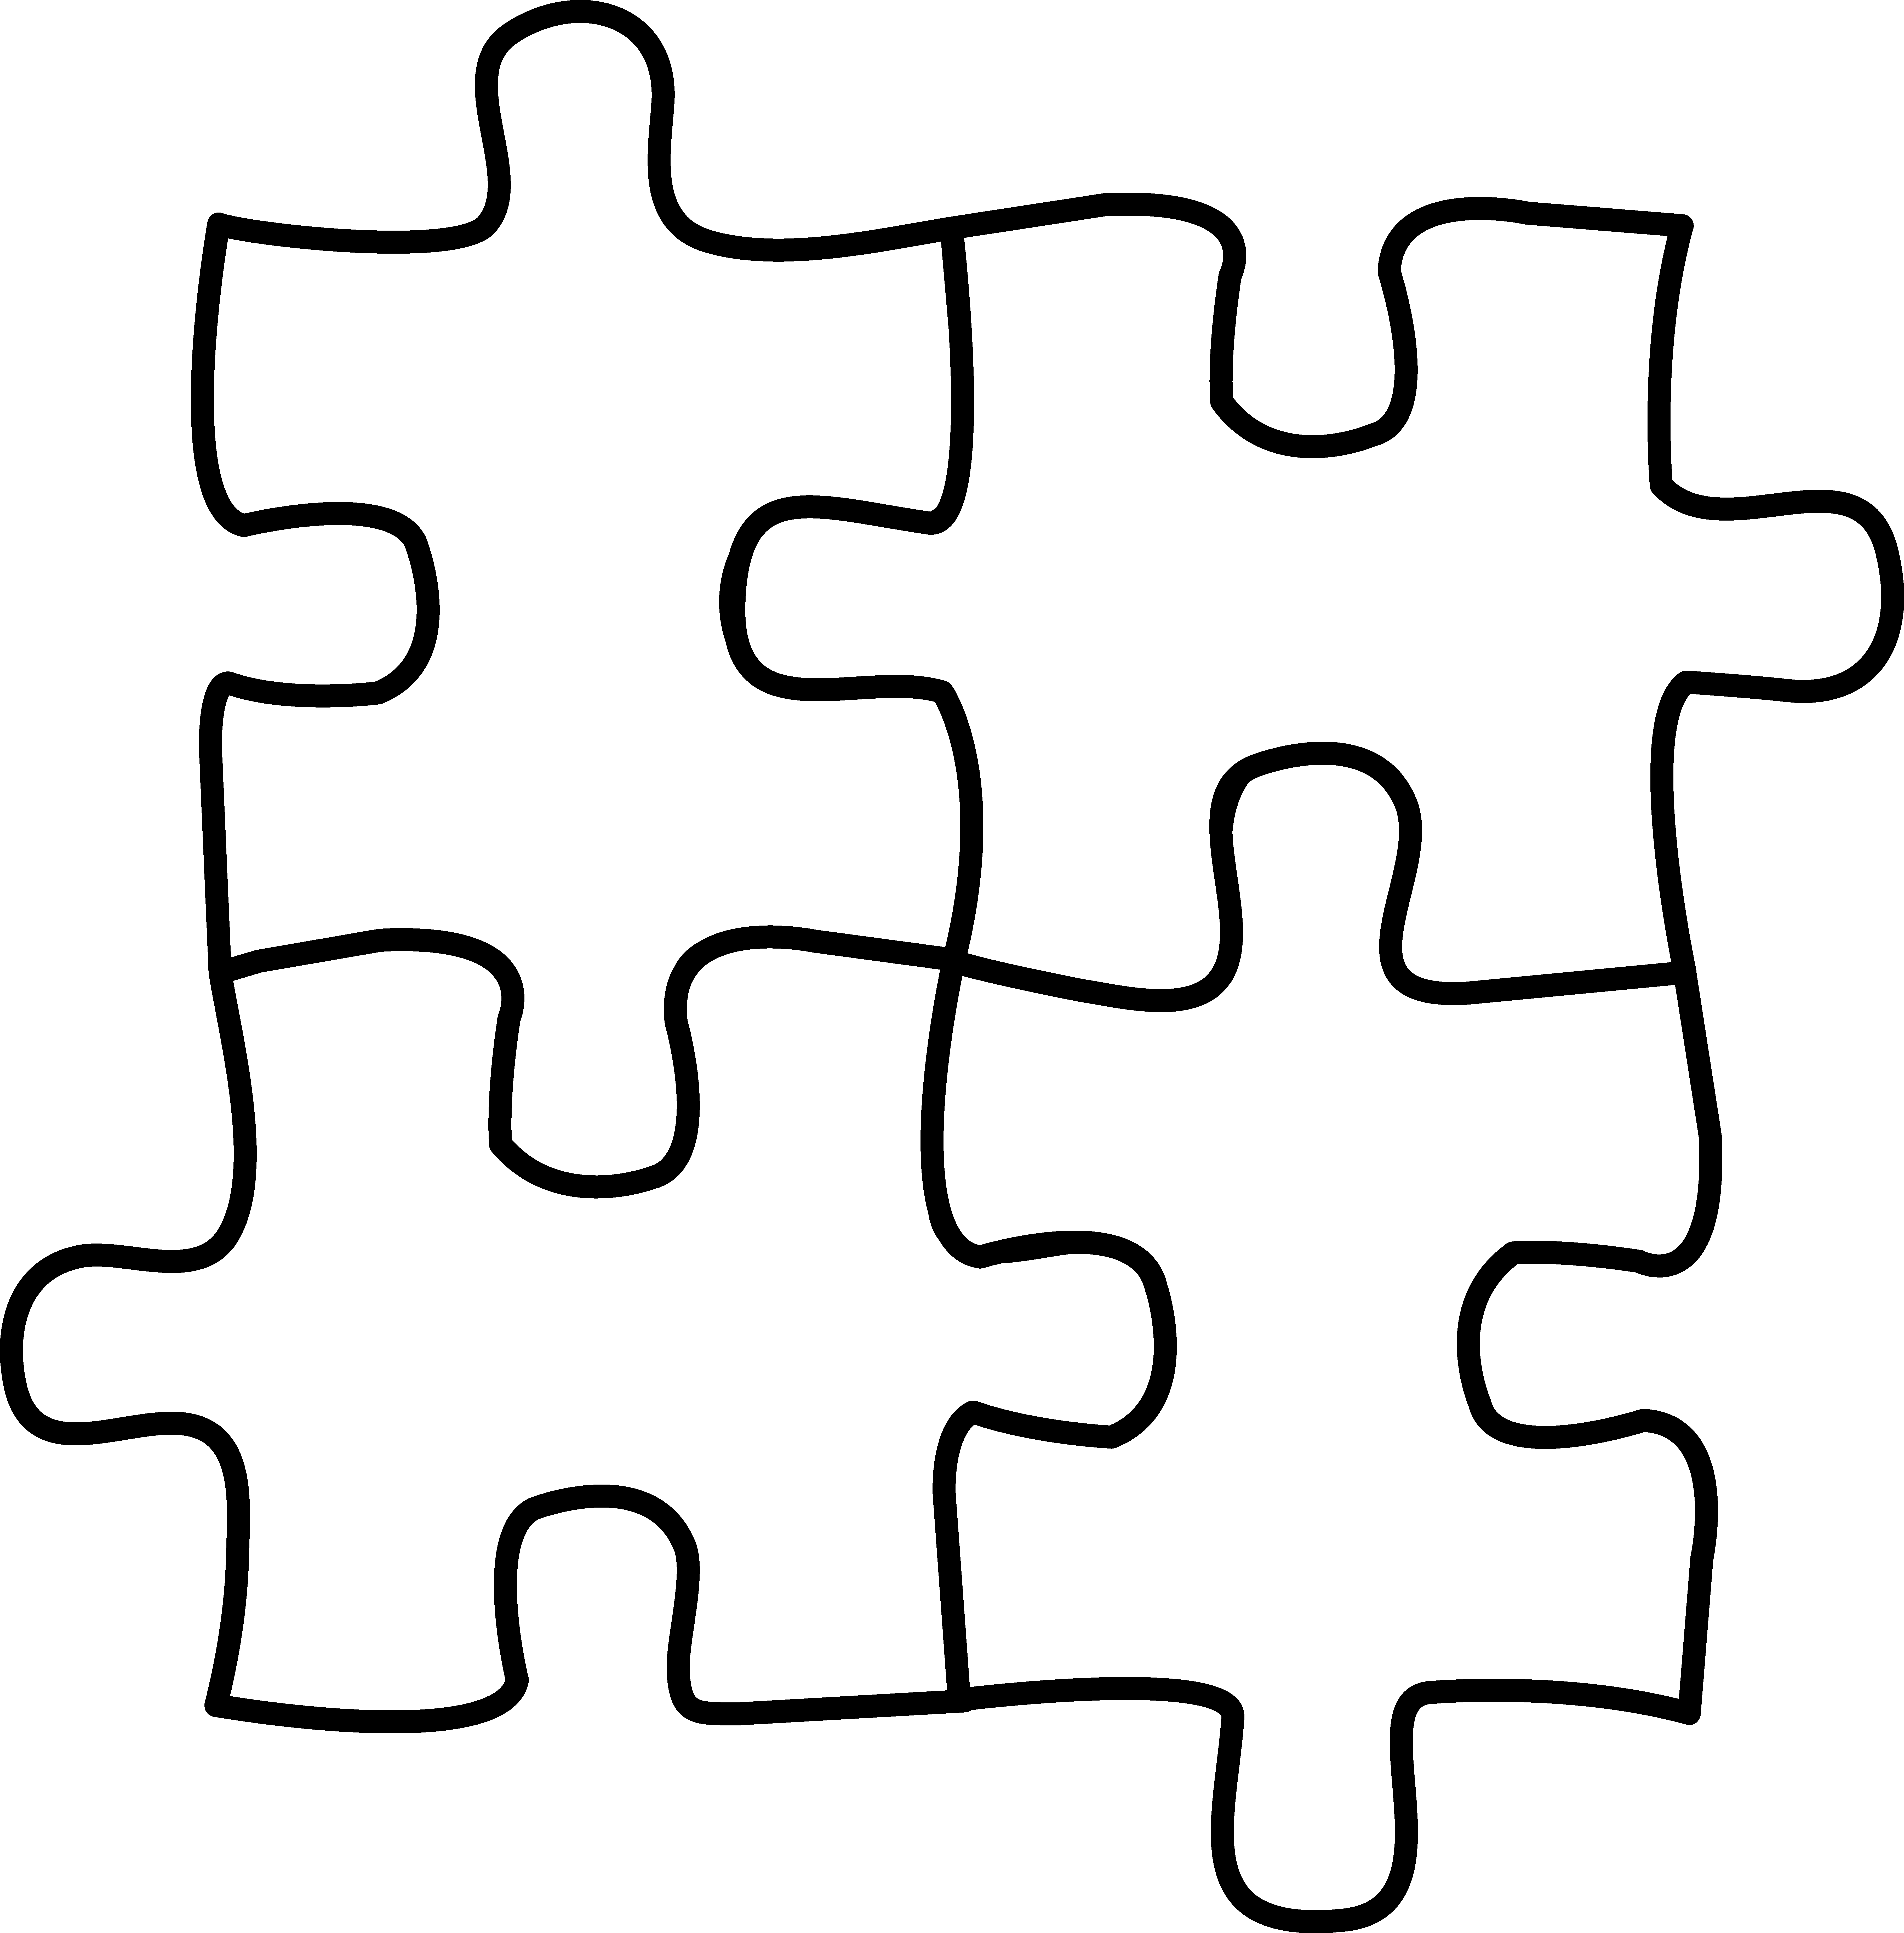 Four Puzzle Pieces For Coloring.